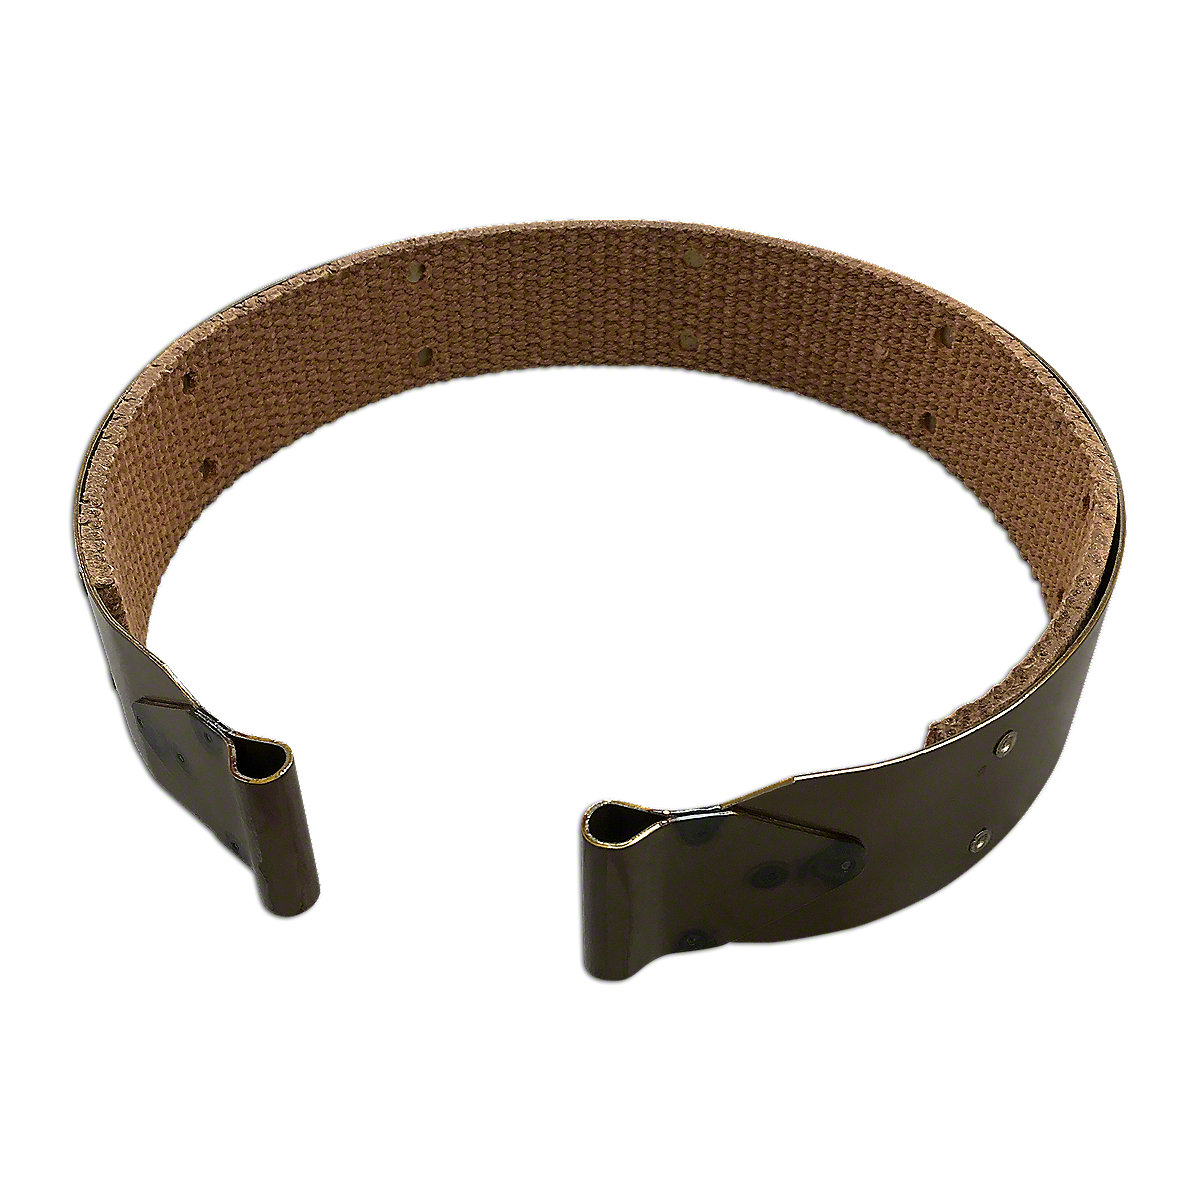 Brake Bands And Lining : Ihs lined brake band